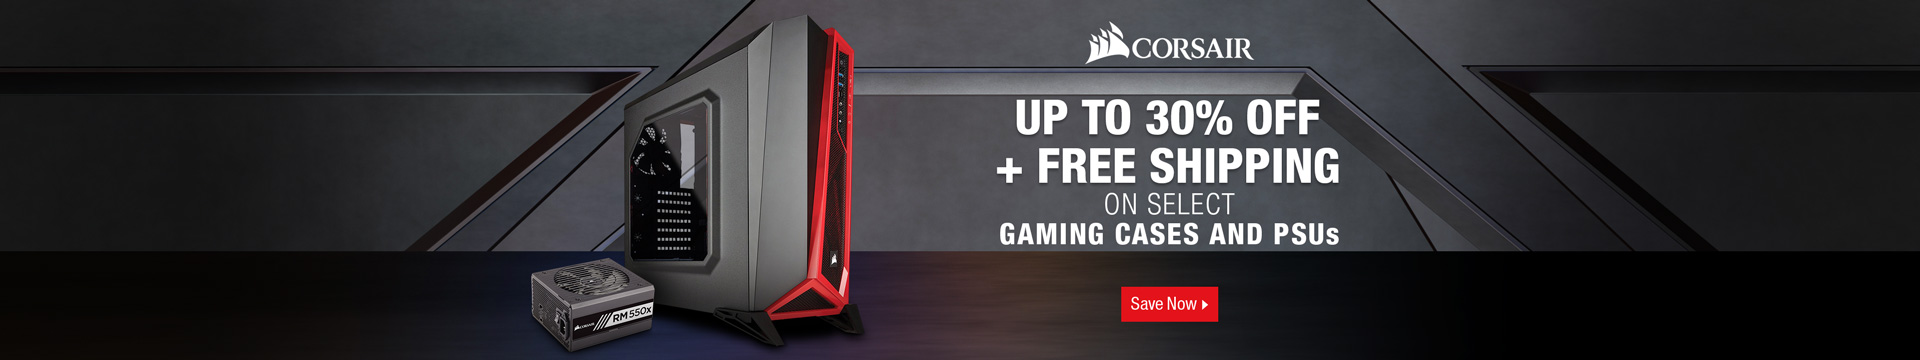 Up to 30% off + Free Shipping on Select Gaming Cases and PSUs